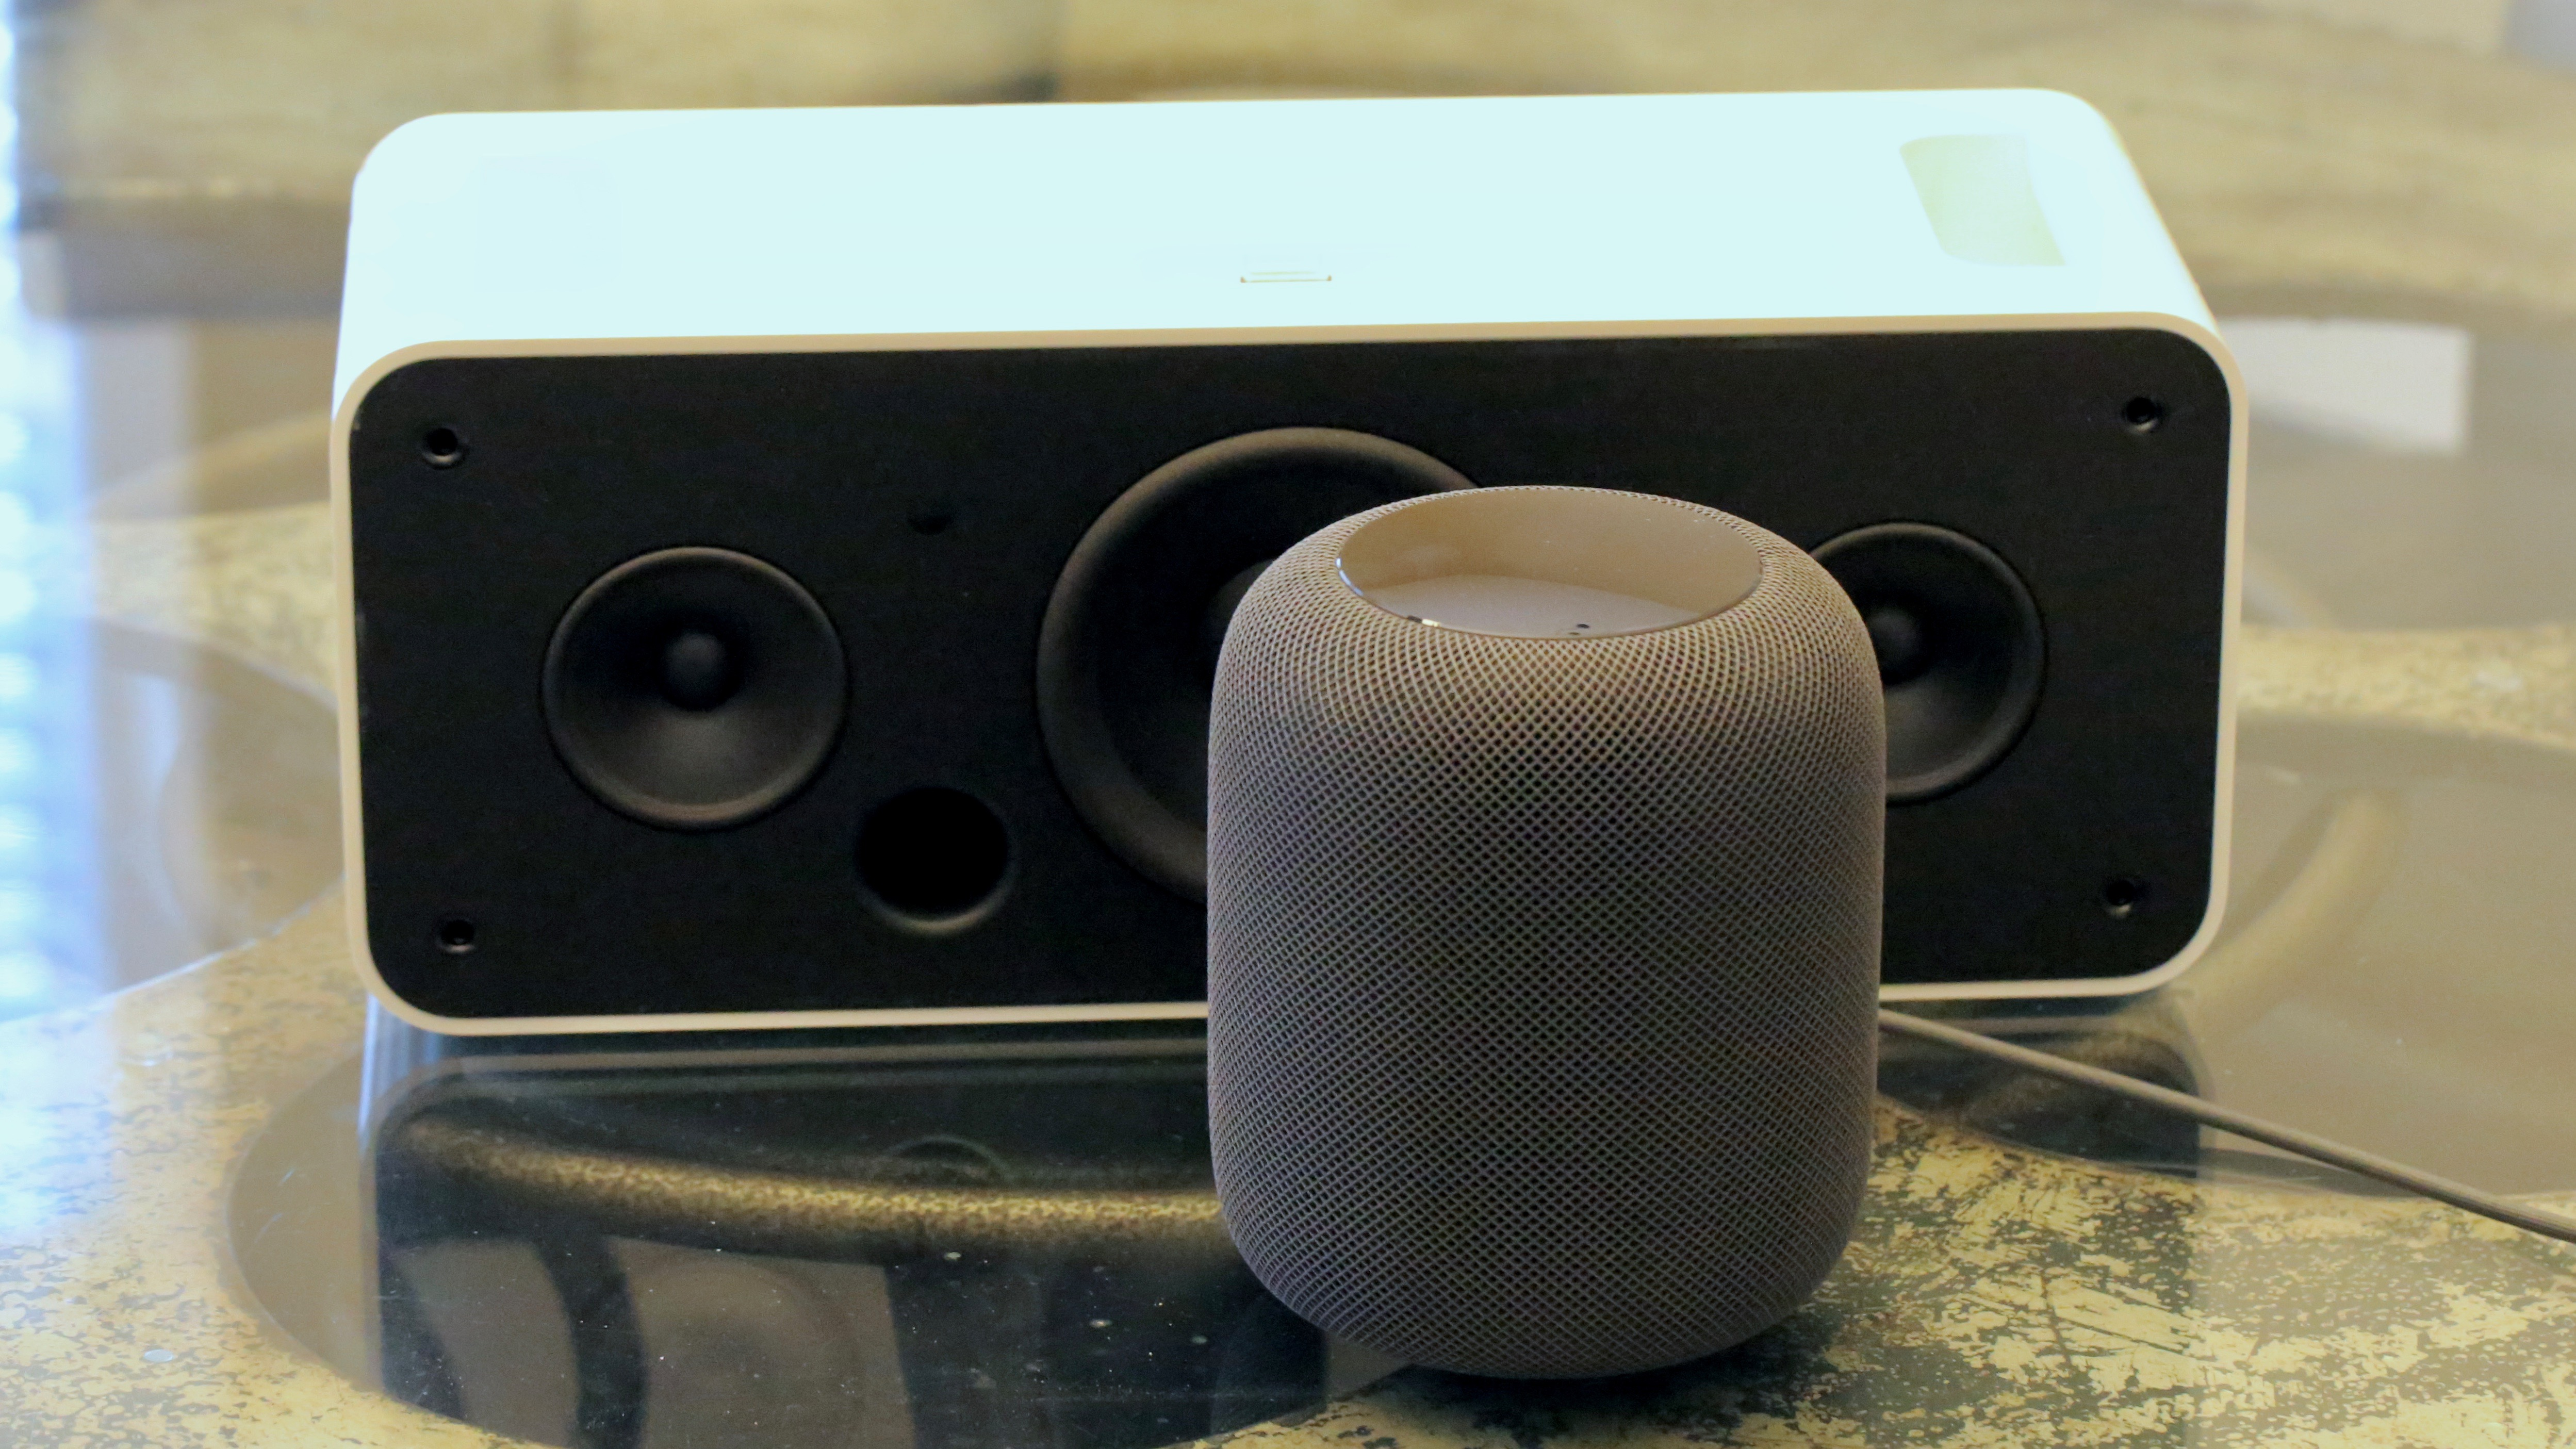 Apple HomePod review: Only Siri fans should consider this